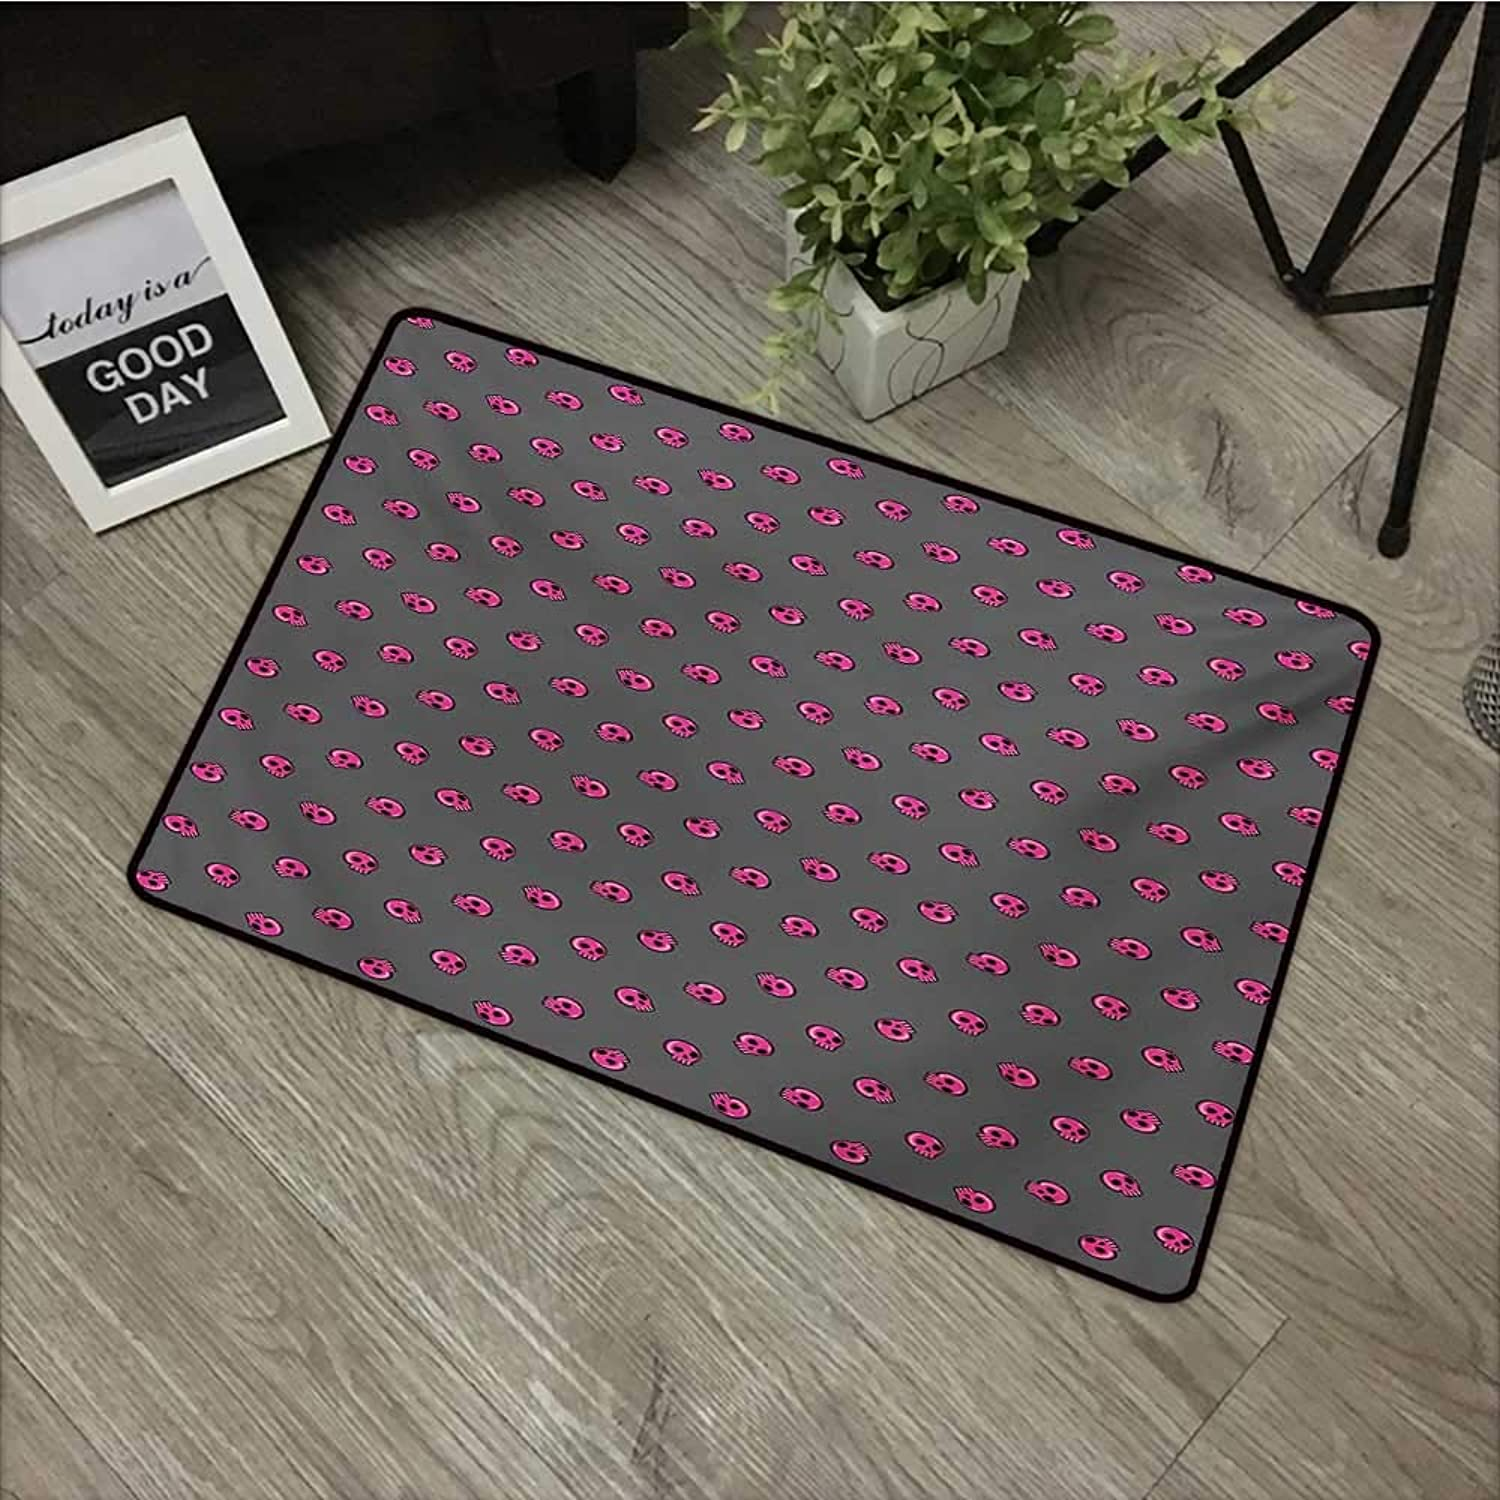 Hall mat W35 x L59 INCH Skull,Hand Drawn Style Pink Emo Skulls Teenager Lifestyle Youth Culture,Dark Taupe Hot Pink Black with Non-Slip Backing Door Mat Carpet